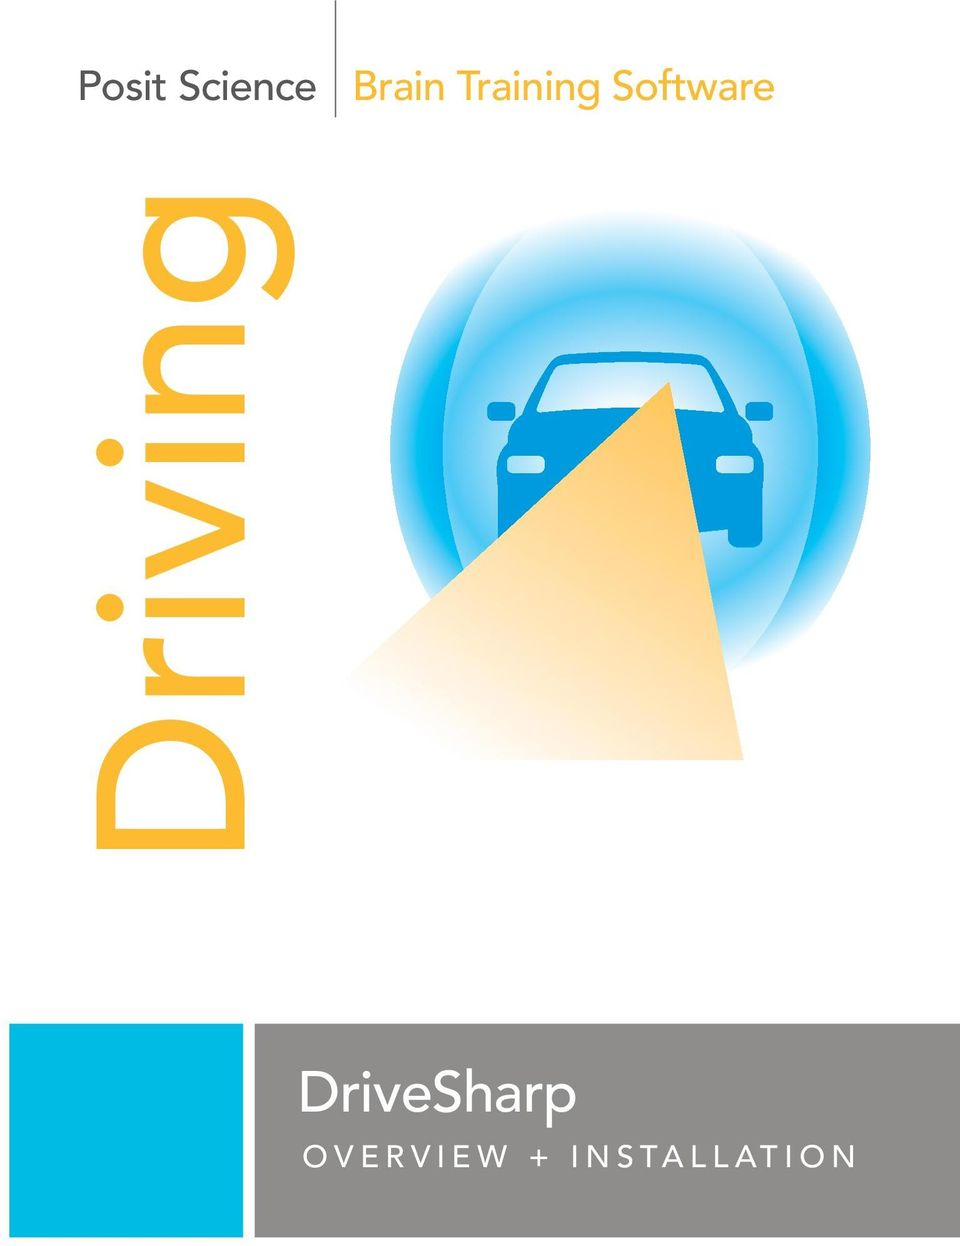 Driving DriveSharp